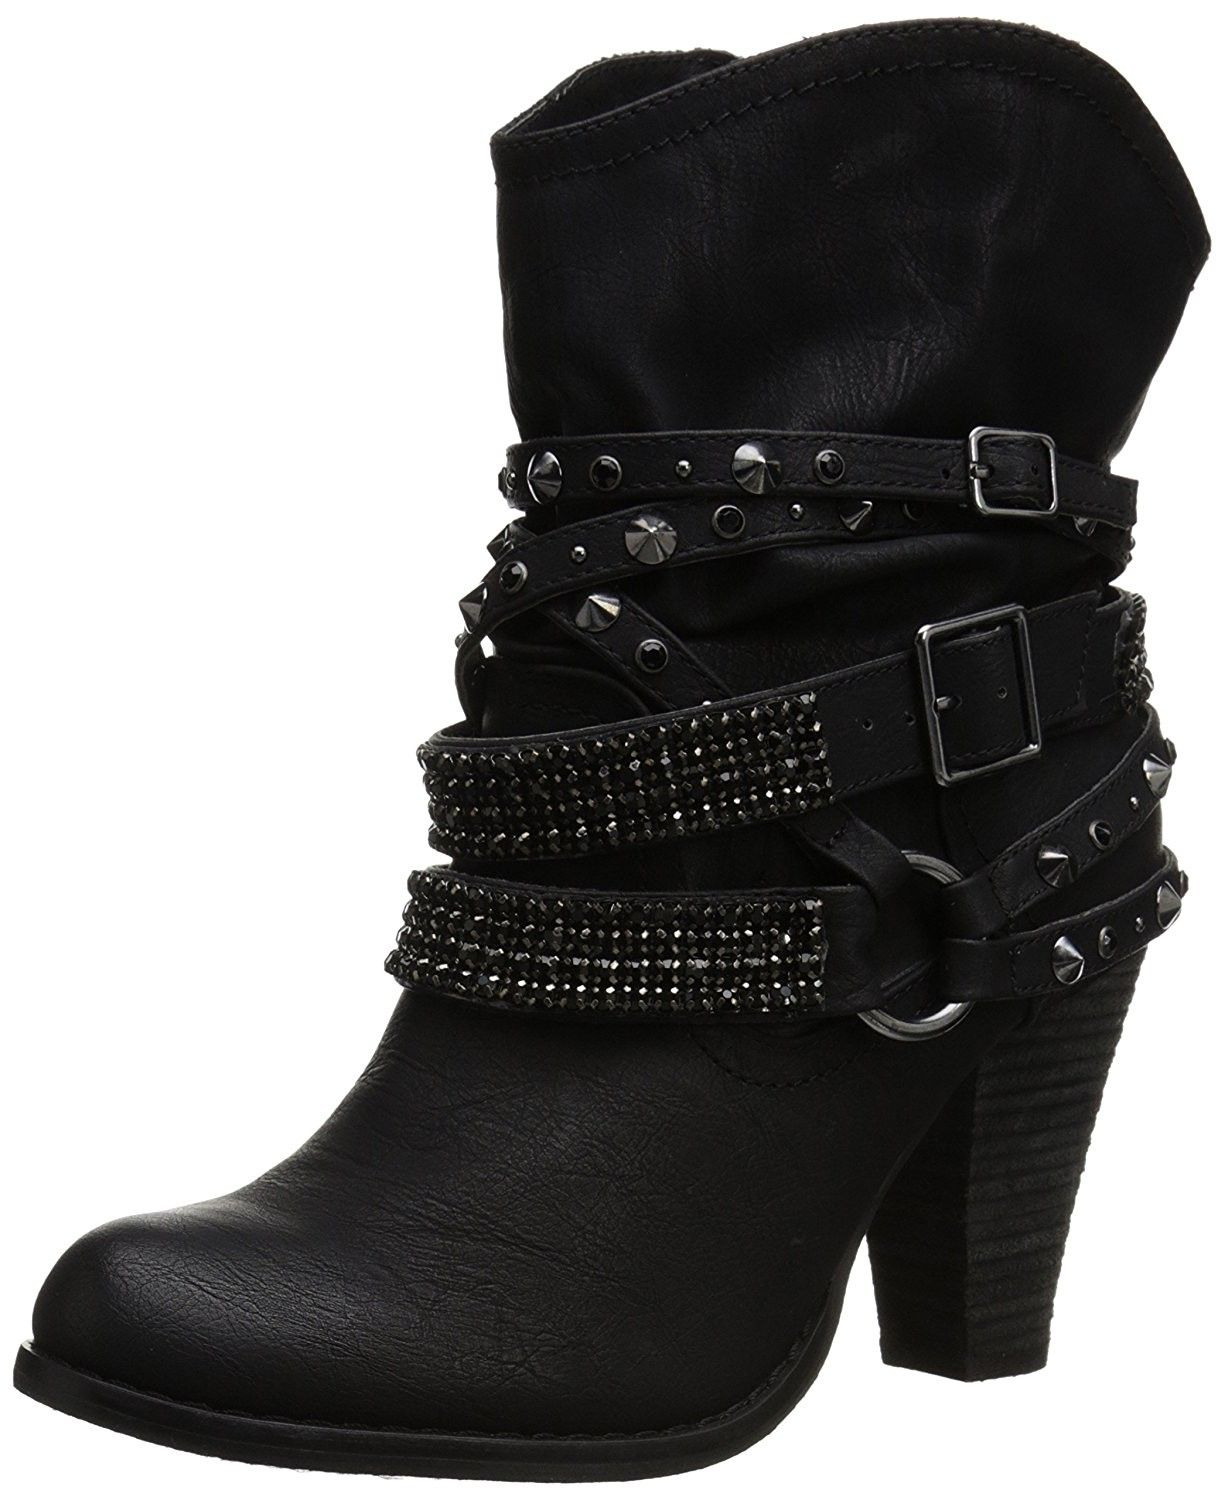 Women's Swanky Boot - Black - CO11U0N4V13